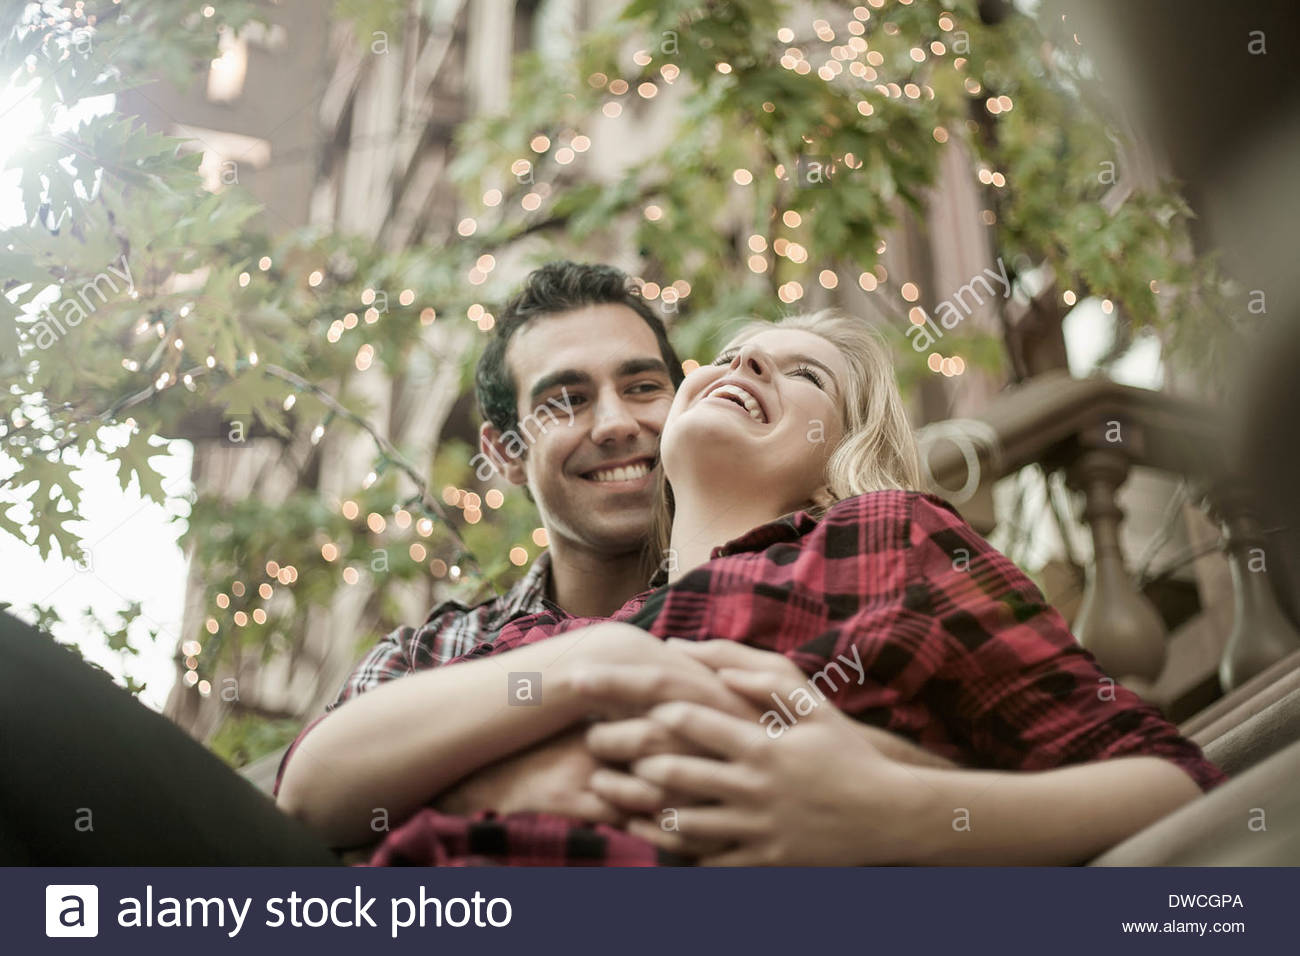 Young couple sitting on steps Photo Stock